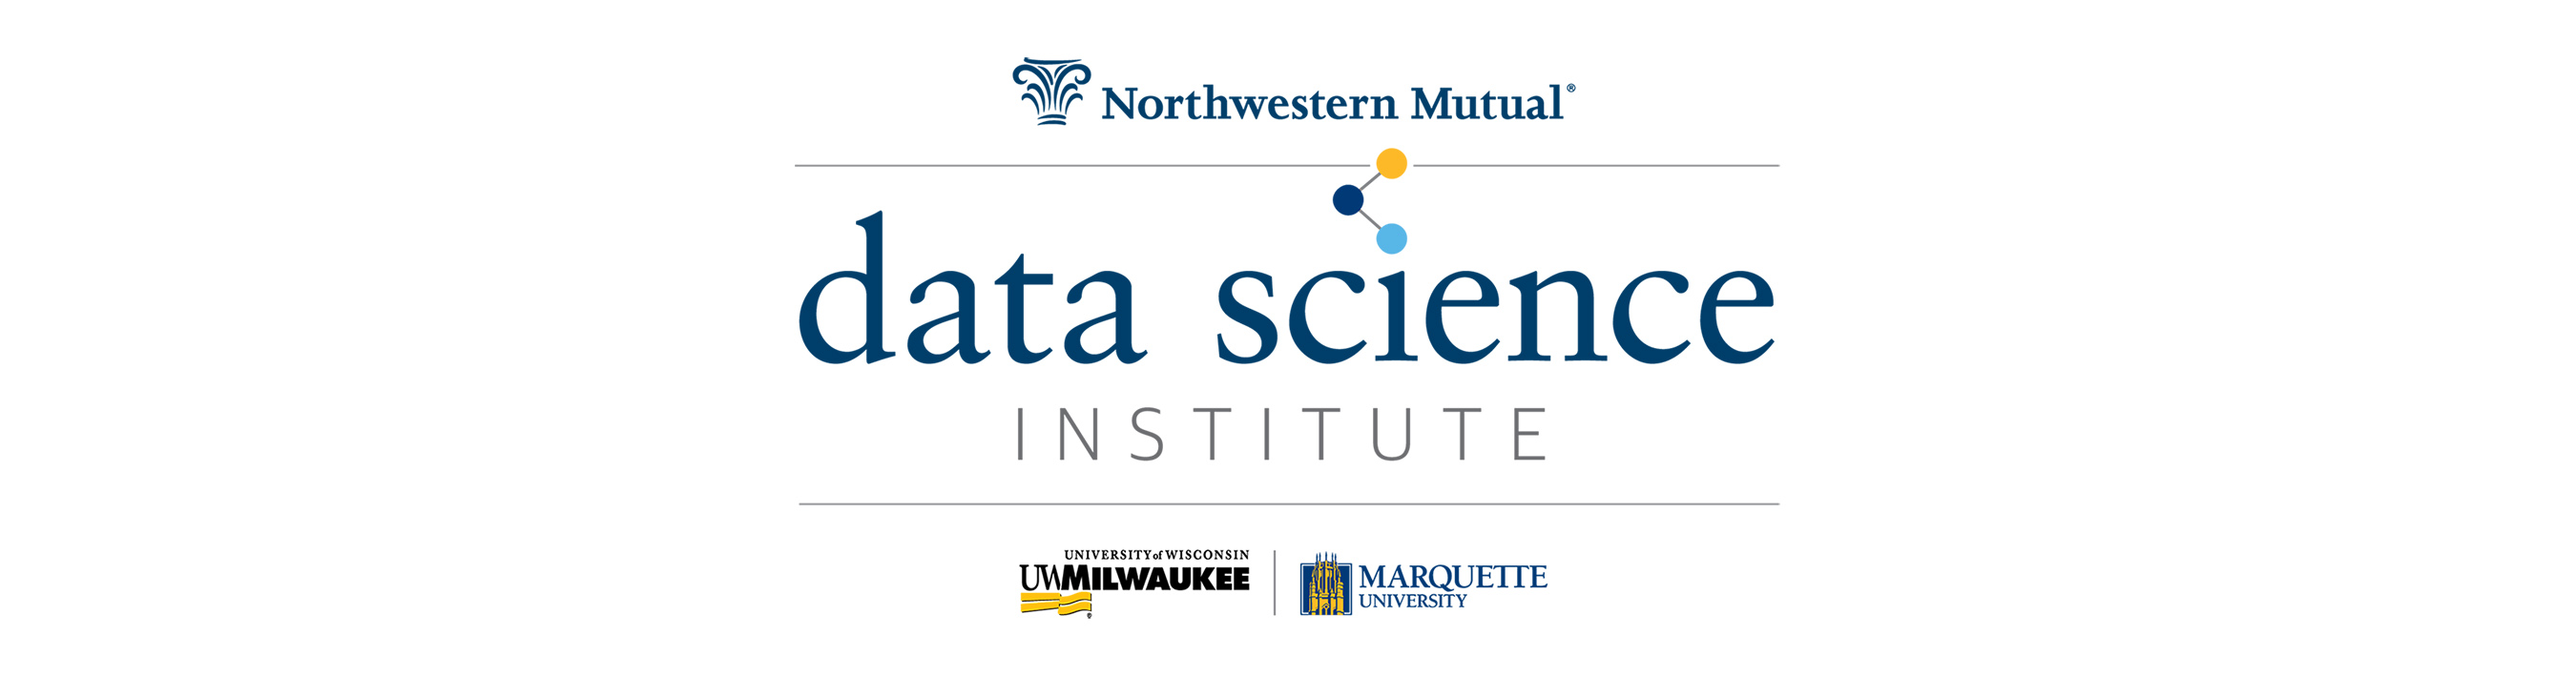 Northwestern Mutual Data Science Institute